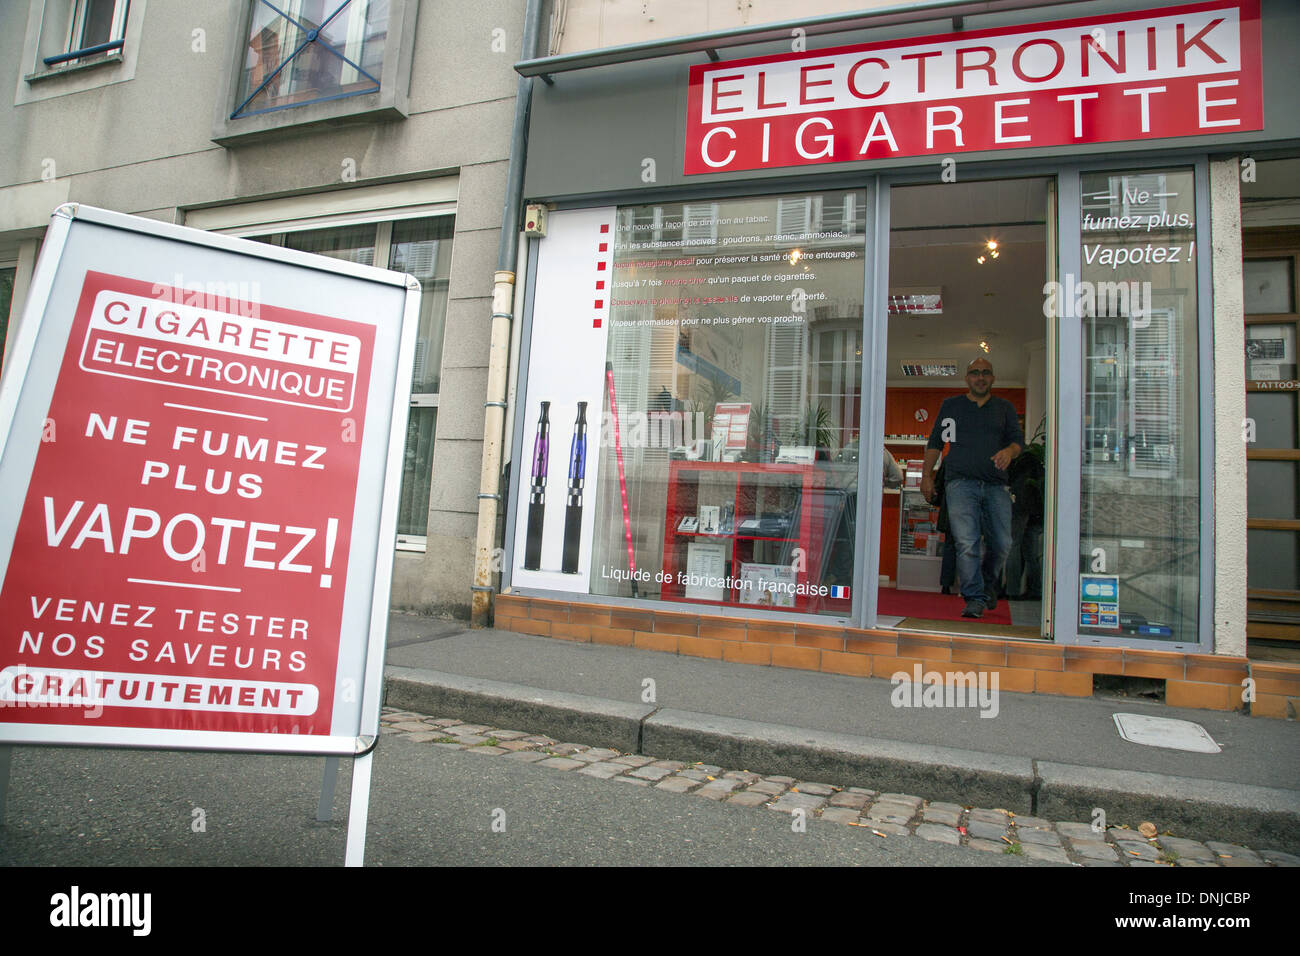 Electronic cigarettes mall kiosk